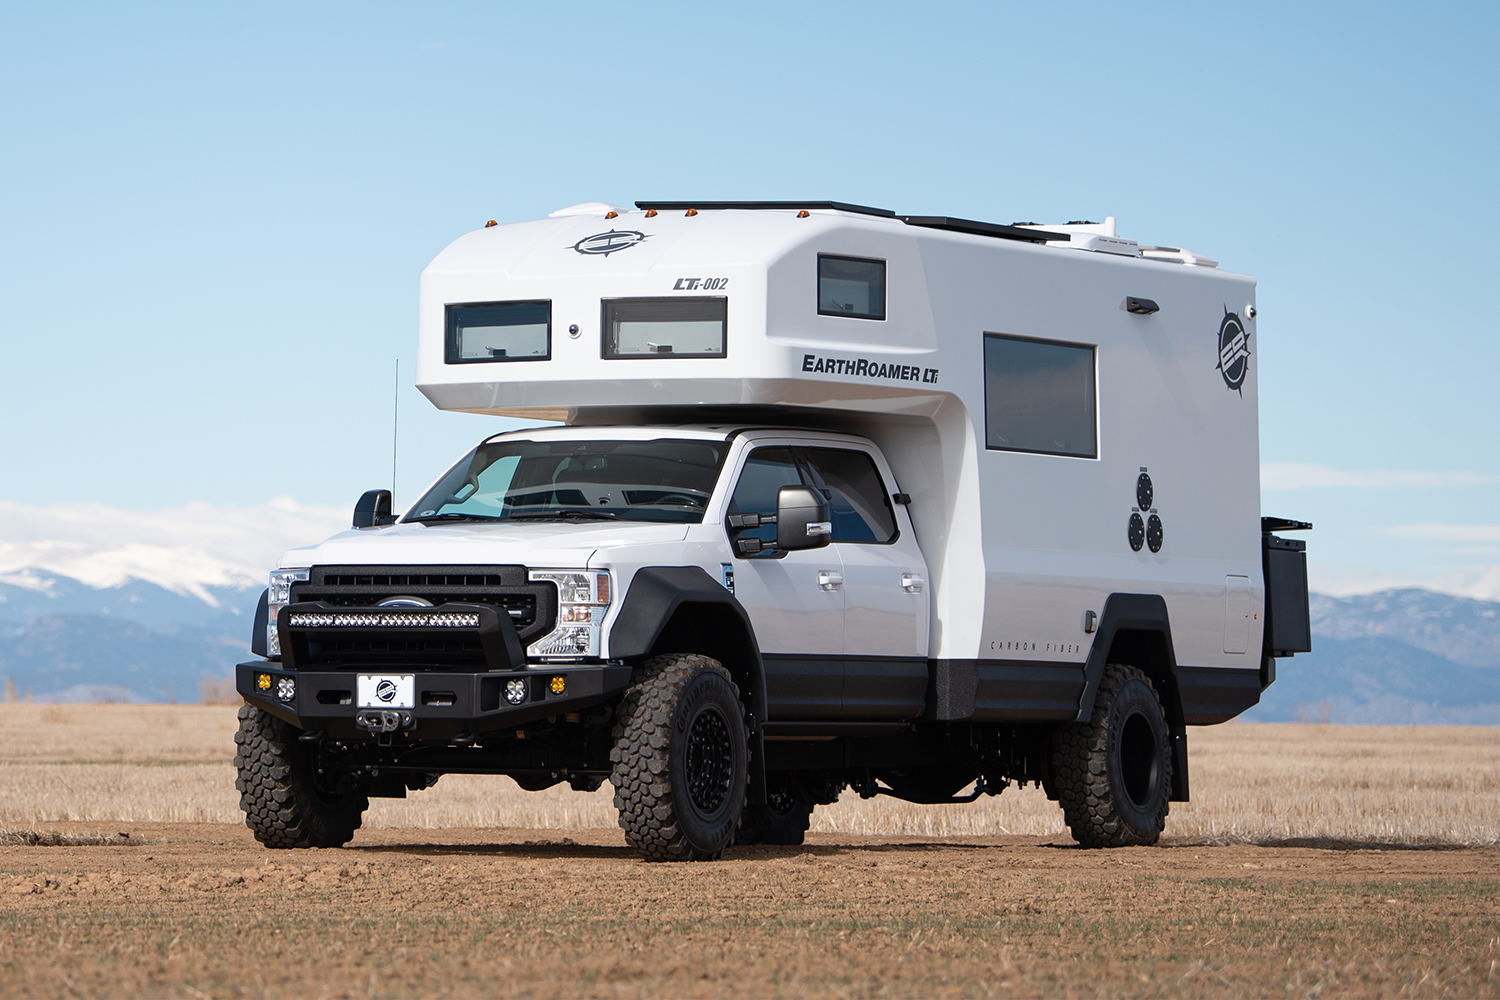 EarthRoamer LTi expedition RV